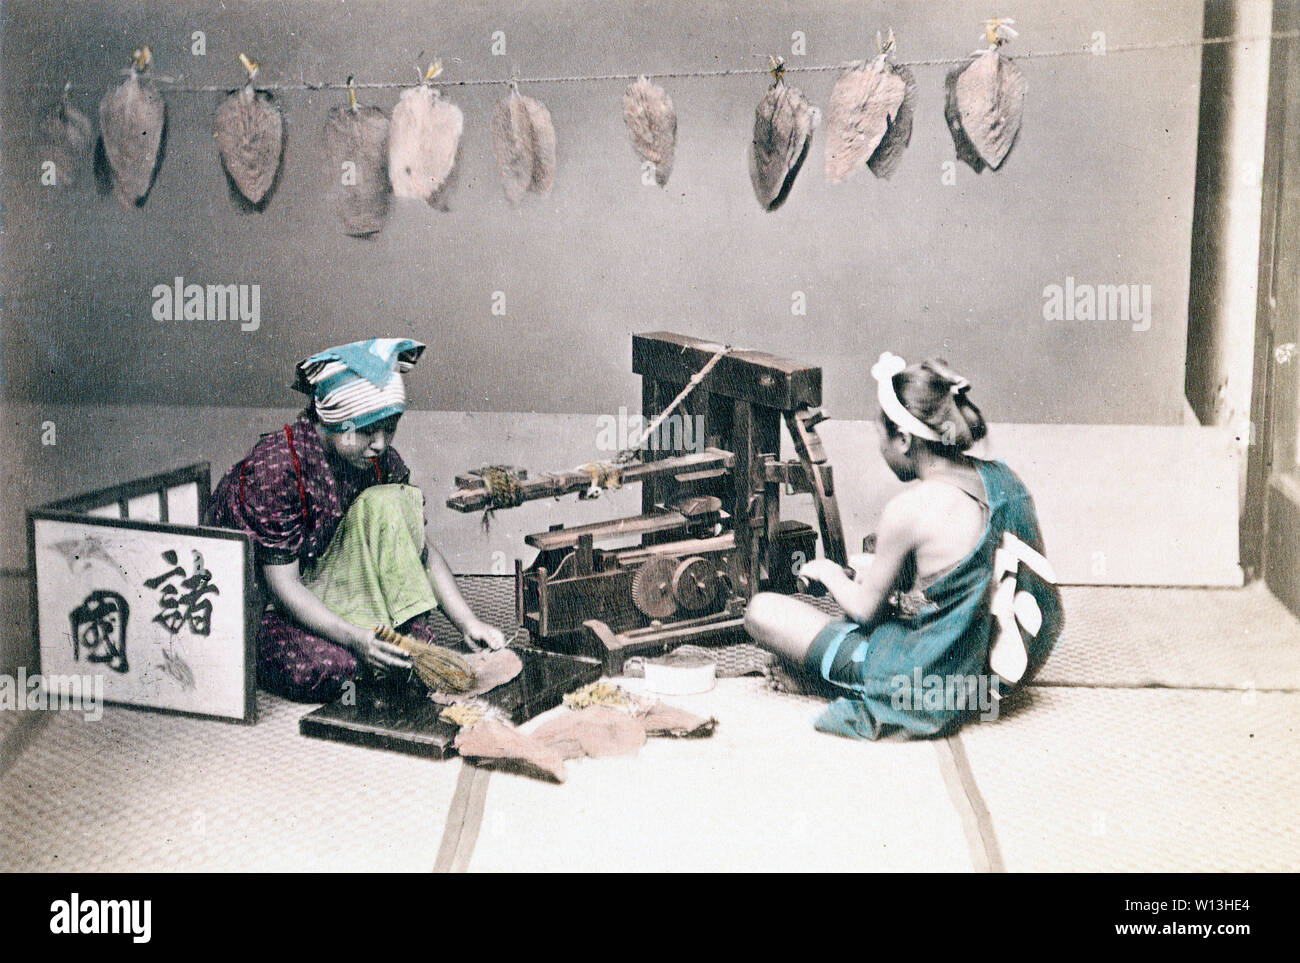 [ 1870s Japan - Japanese Tobacco Makers ] —   A woman and a man in traditional Japanese clothing are cutting tobacco leaves. The man is using a machine. The woman is brushing a leave with a small hand brush. A small screen can be seen on her left. In the background, tobacco leaves are hanging from a string.  19th century vintage albumen photograph. - Stock Image